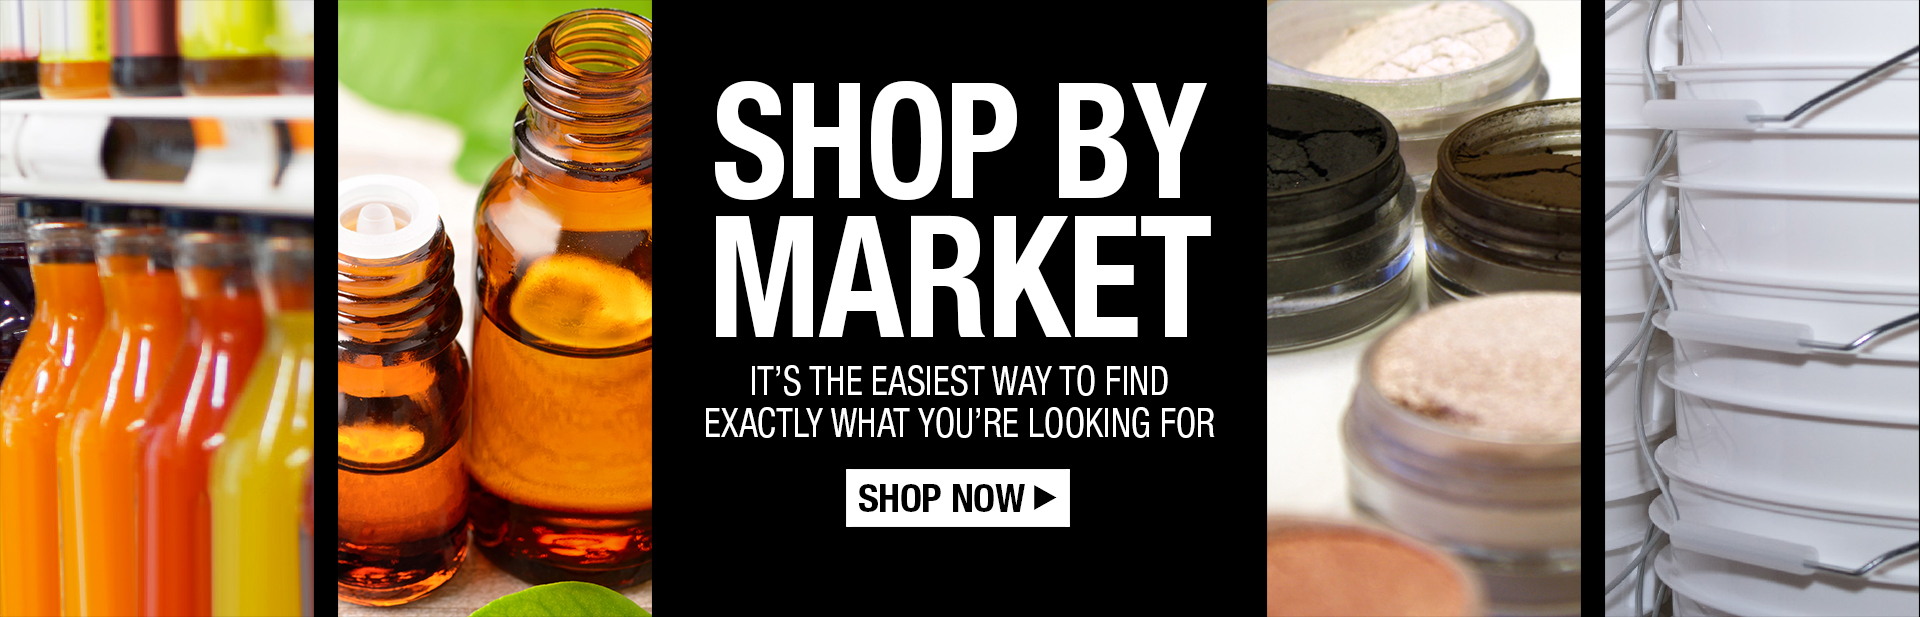 Shop by Market.  It's the easiest way to find exactly what you're looking for!